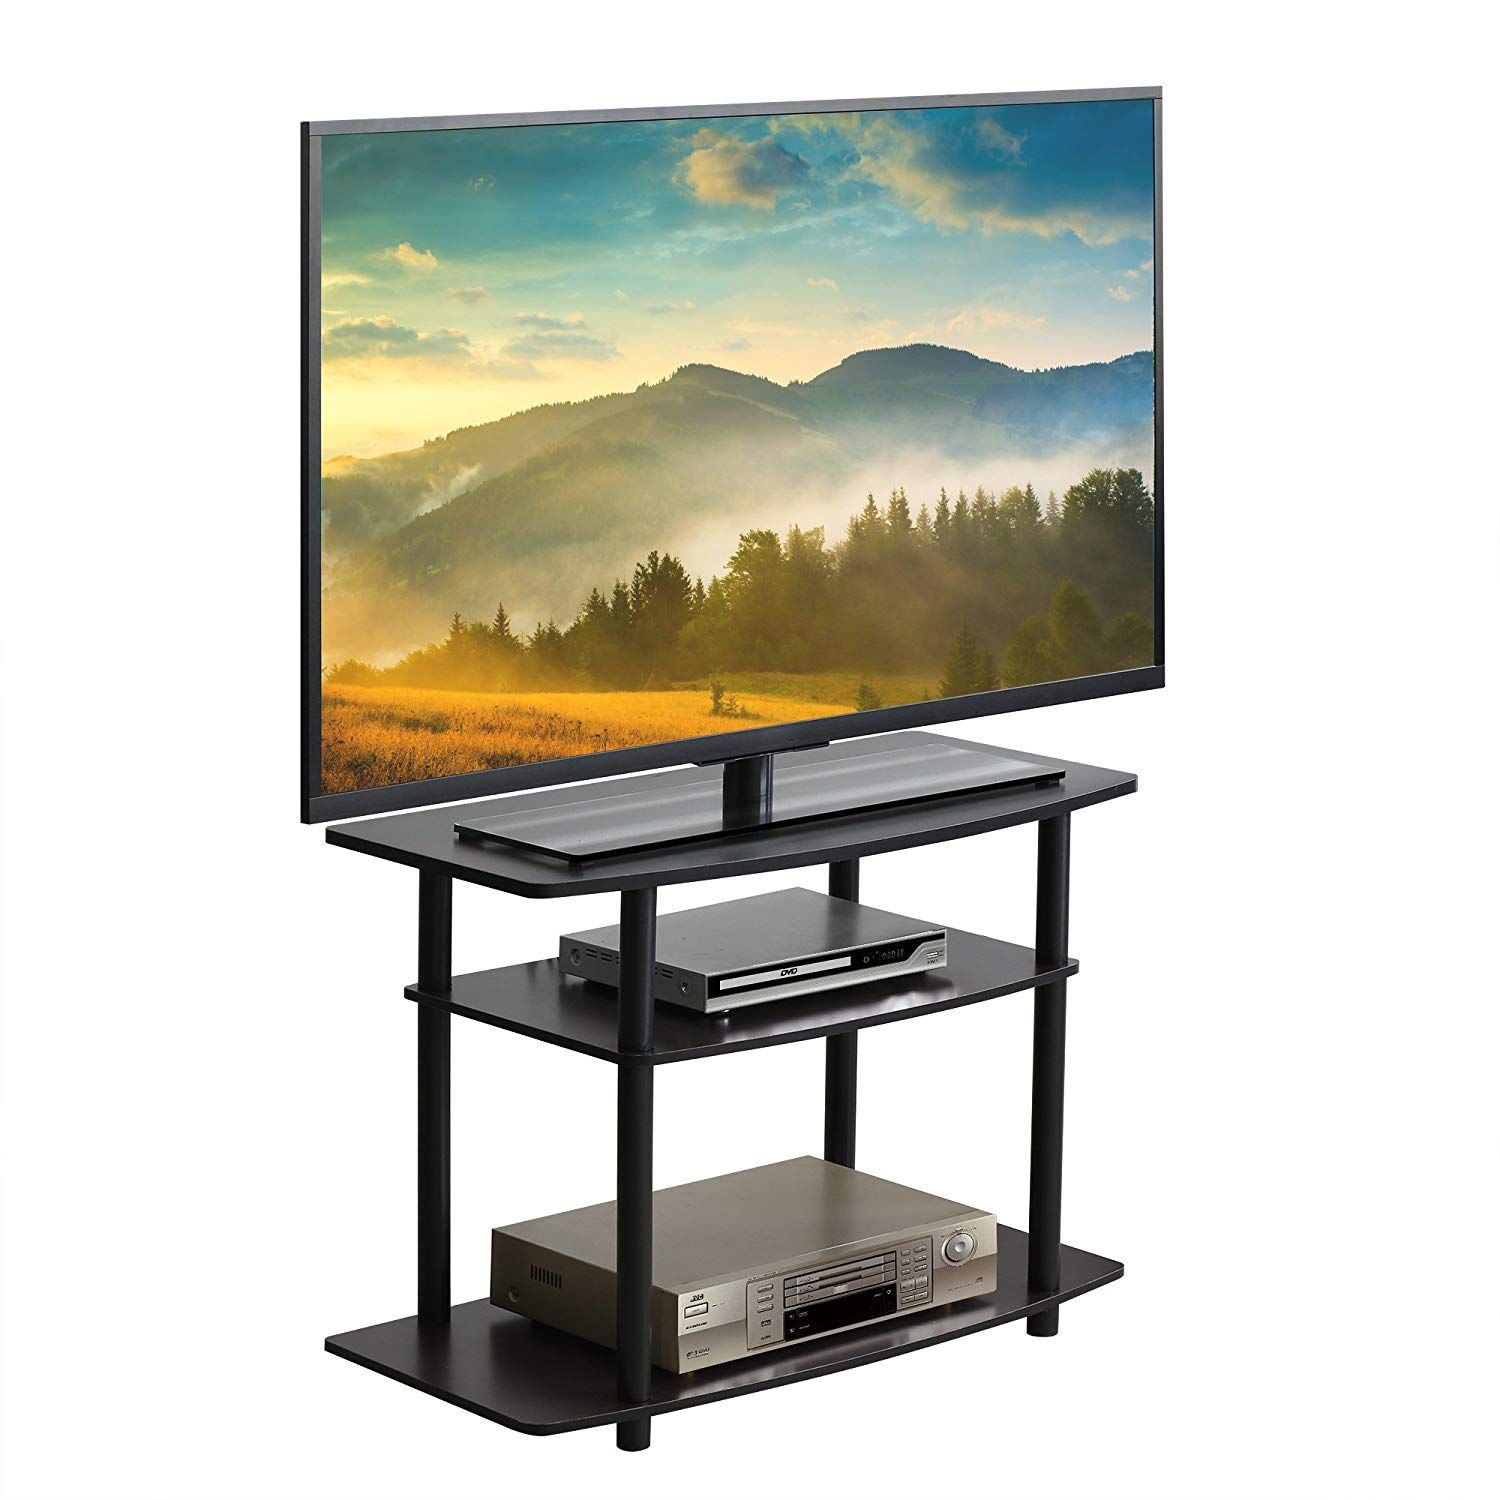 Furevol Arau 3 Tier Tv Stand For Tv Up To 40 Inch Mocha Espresso 3 Tier Tv Stand Tv Stand Luxury Tv Stand